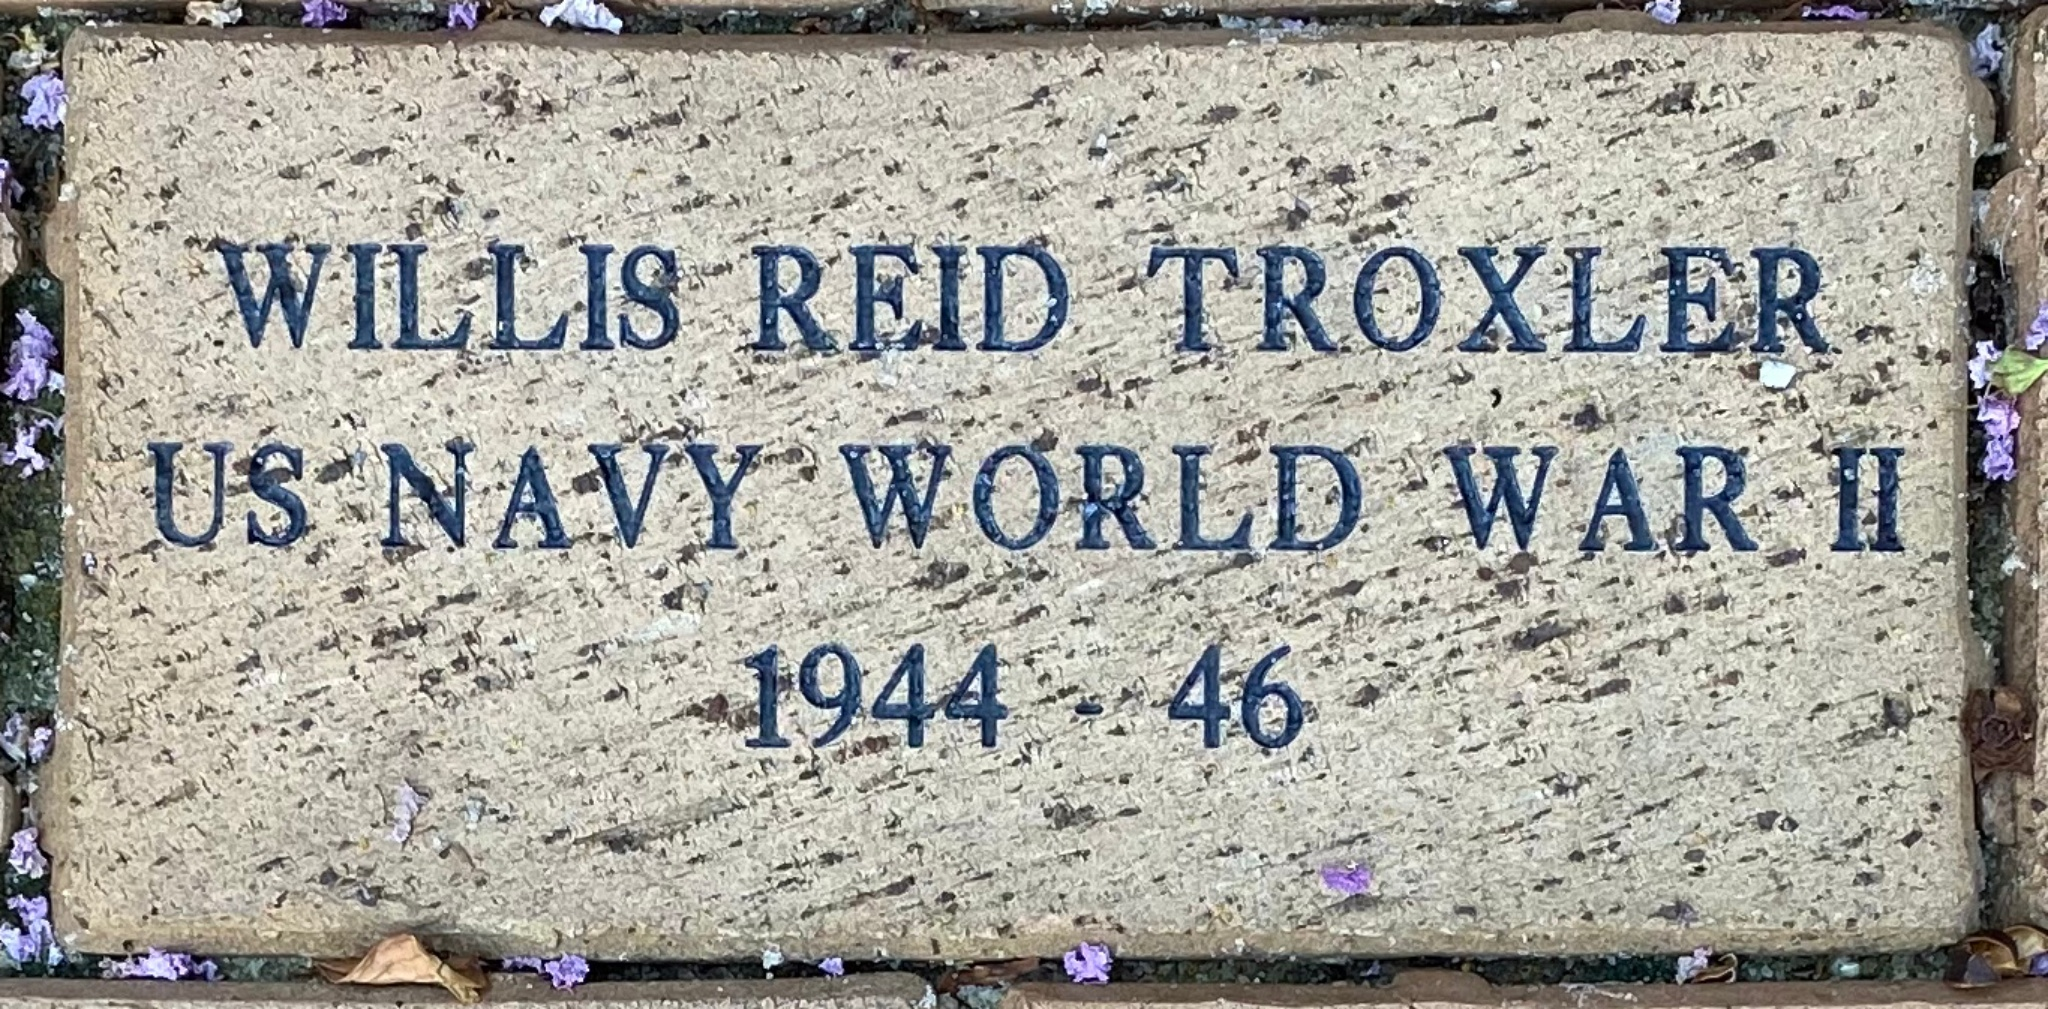 WILLIS REID TROXLER US NAVY WORLD WAR II 1944 – 46